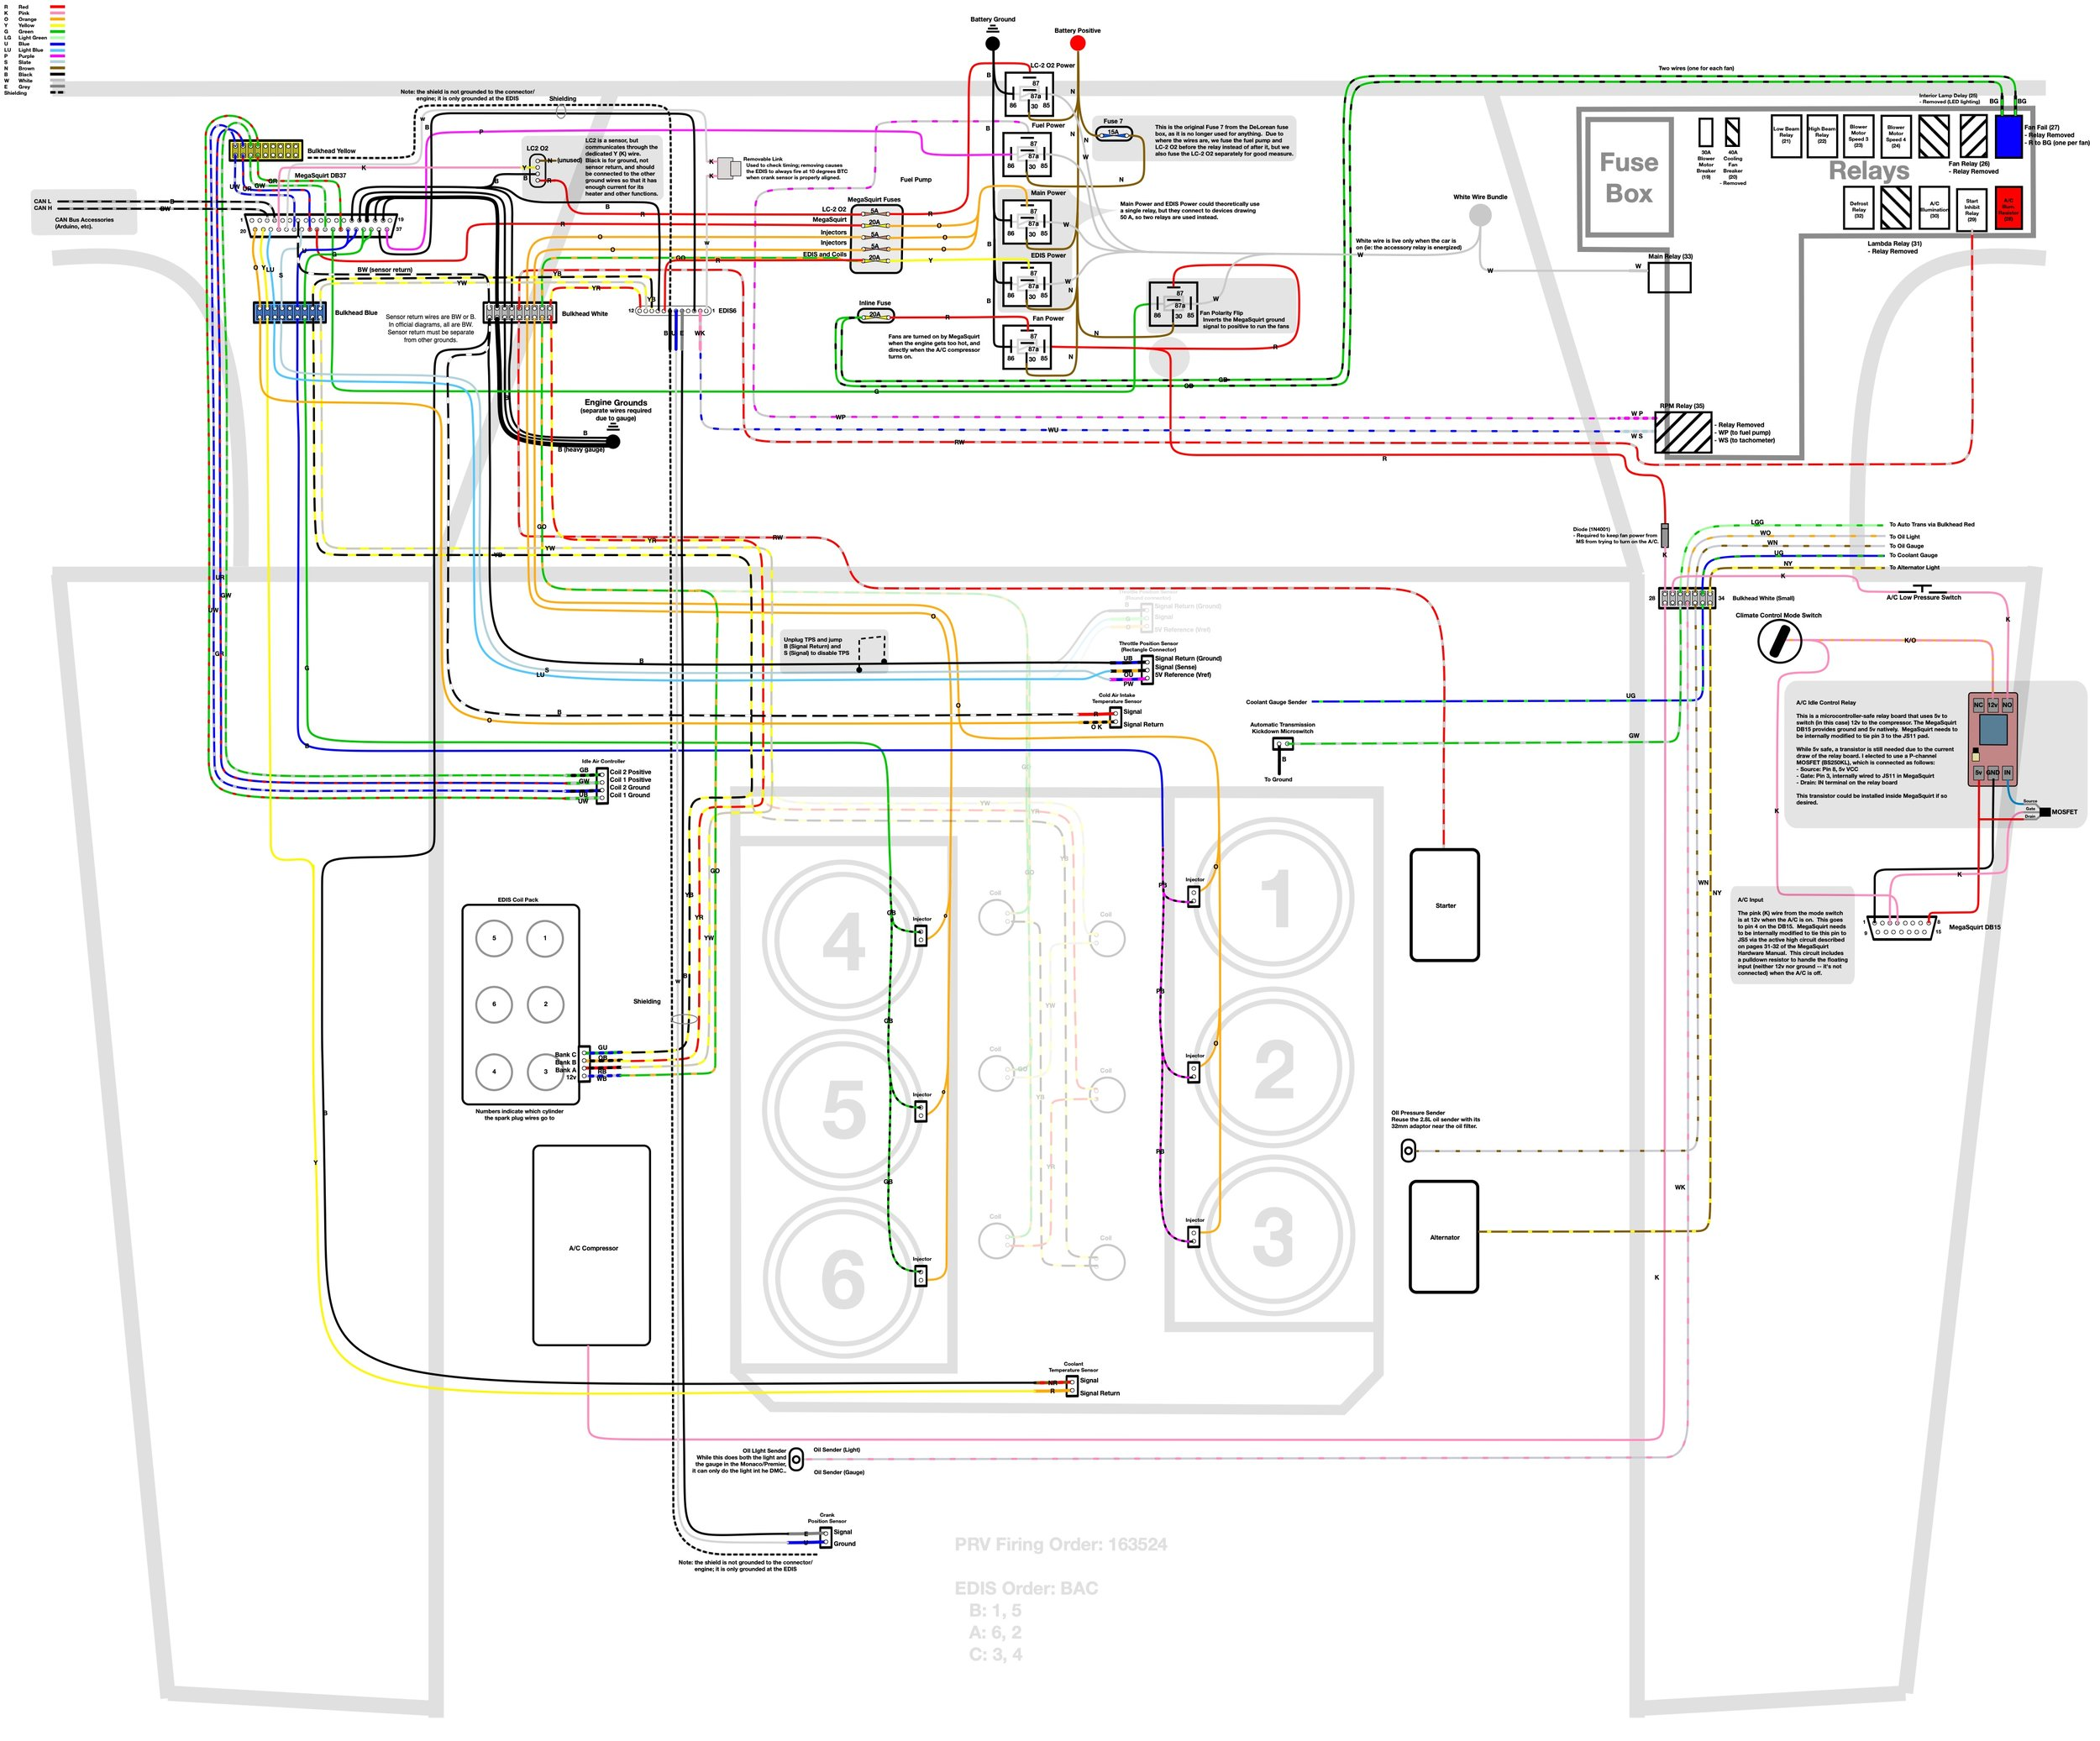 DeLorean+EFI+Wiring?format=1500w wiring, installing the new harness and fuel injector refurbishing delorean wiring diagram at crackthecode.co